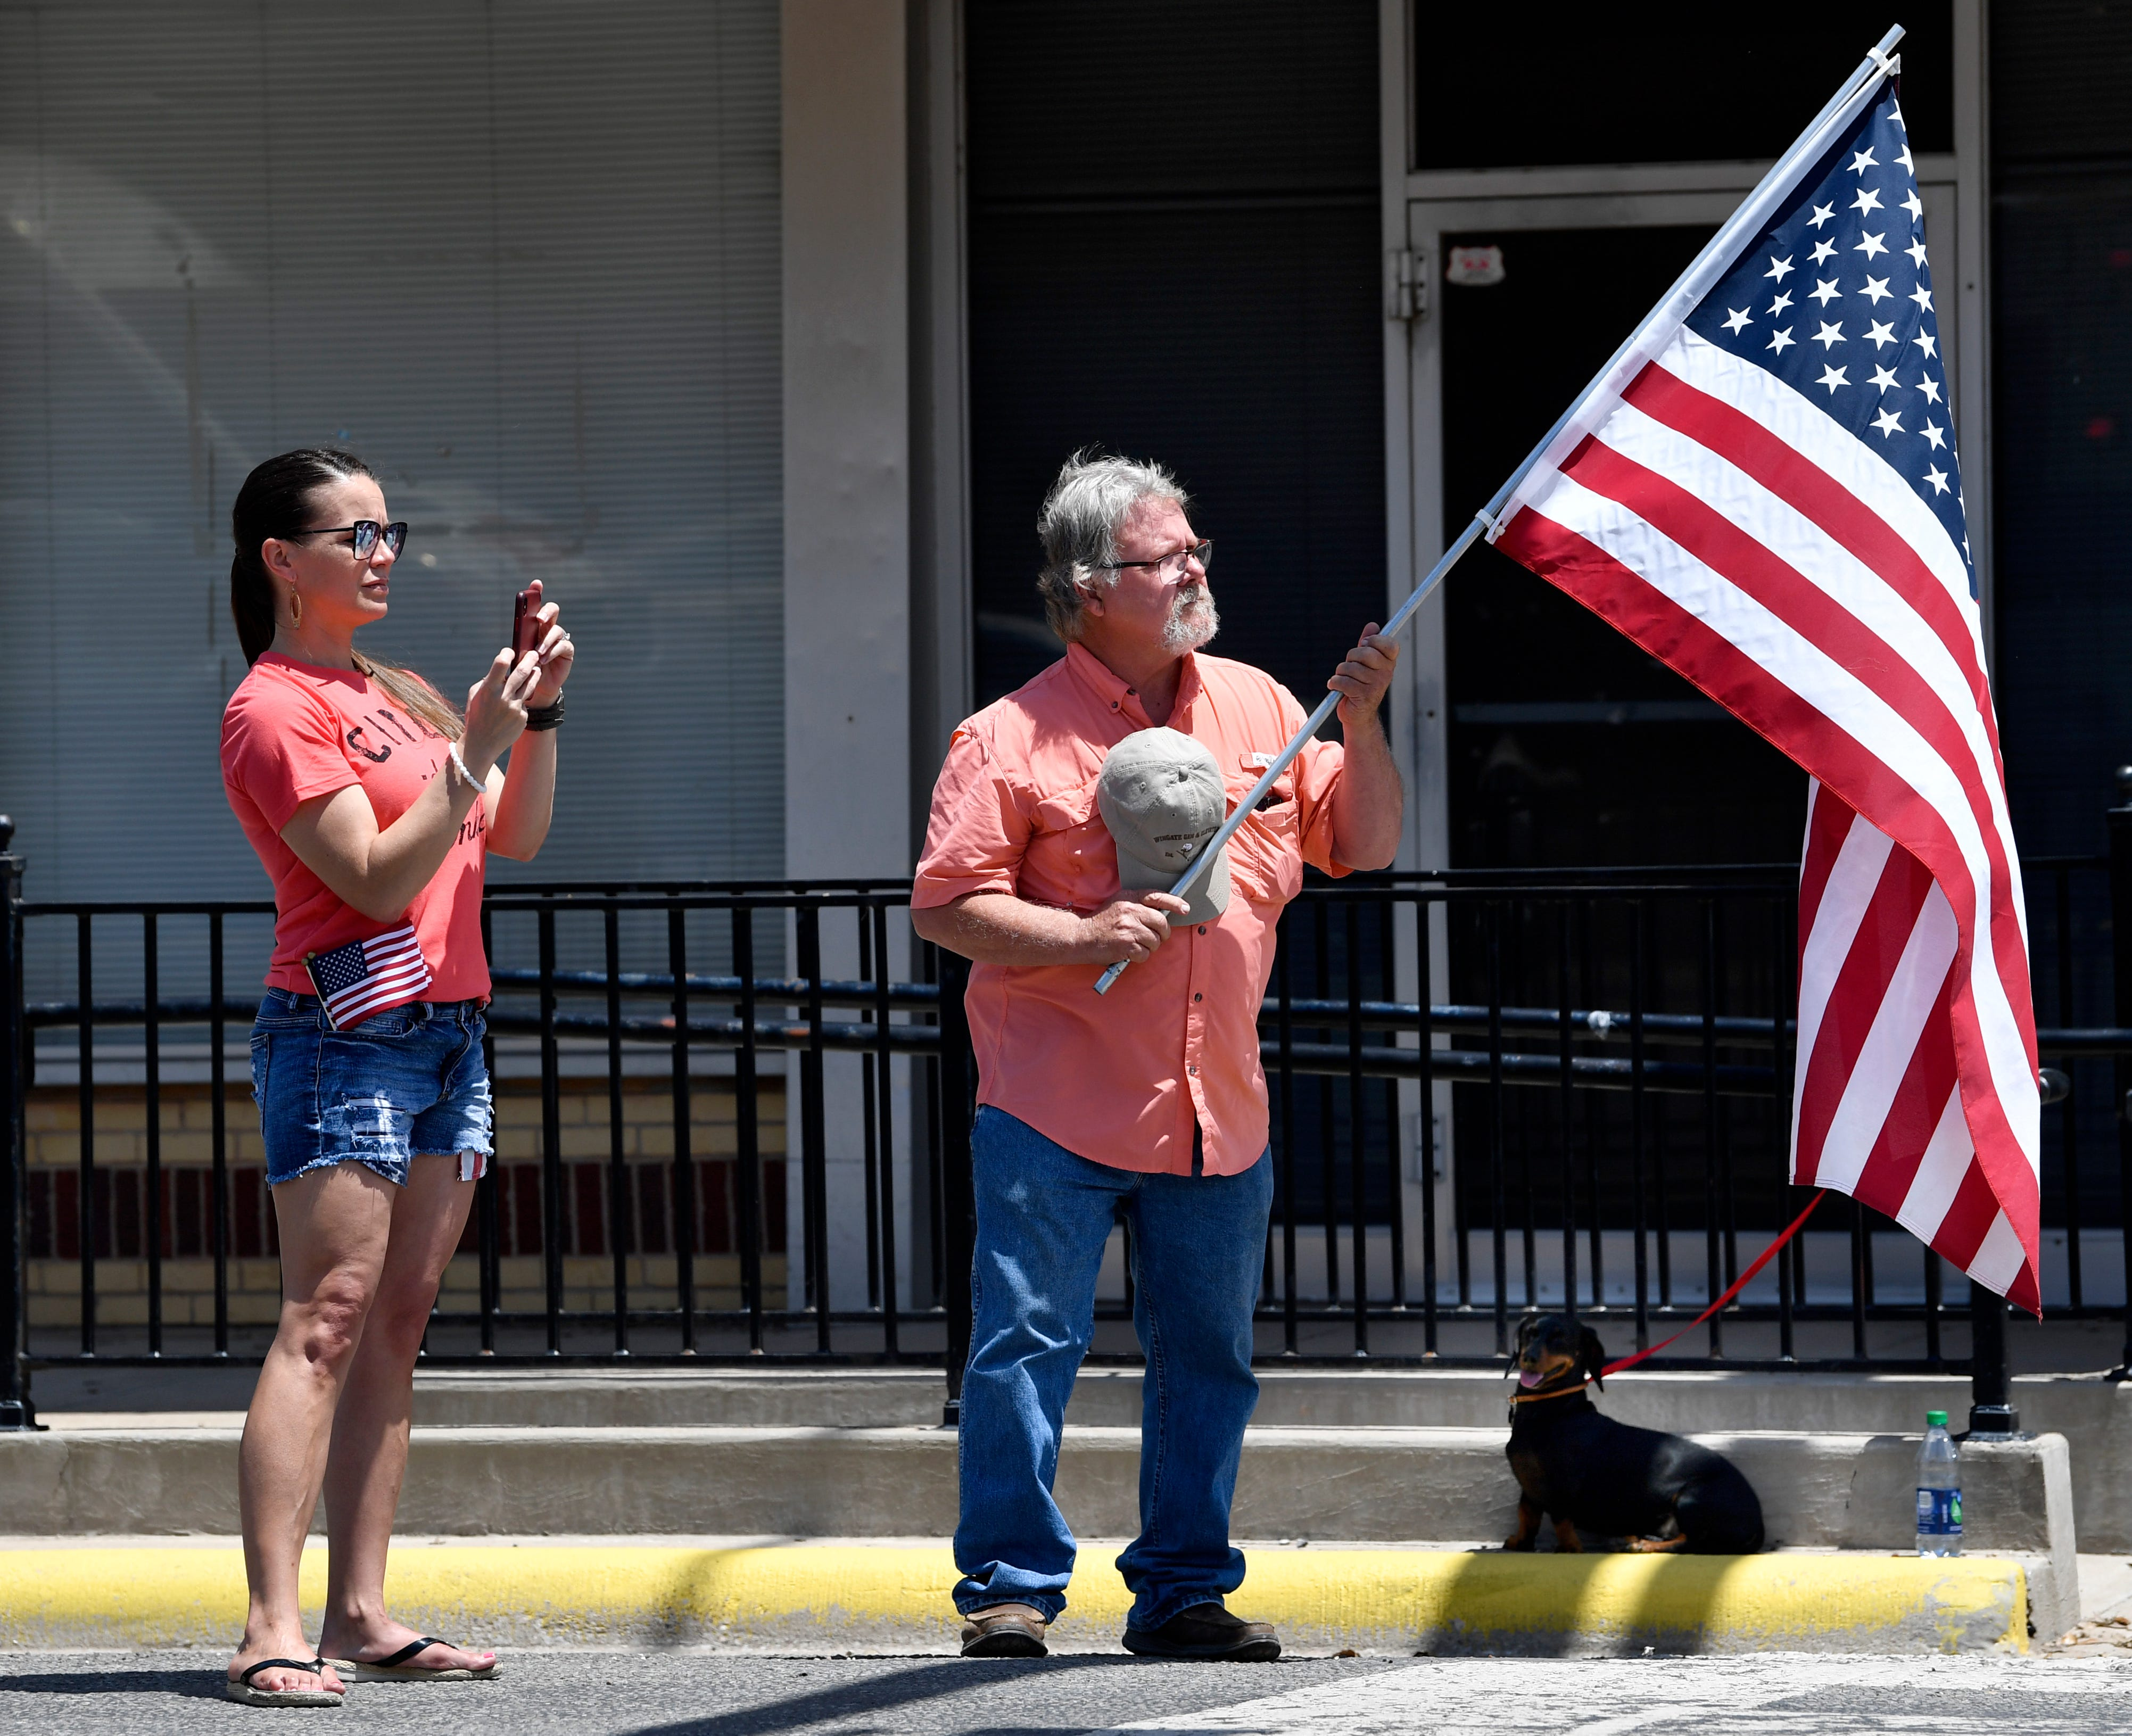 Katy Grimes of Granbury, Texas, stands with her uncle, Roy Brown, watching the funeral procession of Hale McKissack enter Winters, Texas, and then turn toward Fairview Cemetery on Saturday, May 4, 2019. McKissack died at Pearl Harbor on Dec. 7, 1941, his remains were only recently identified.